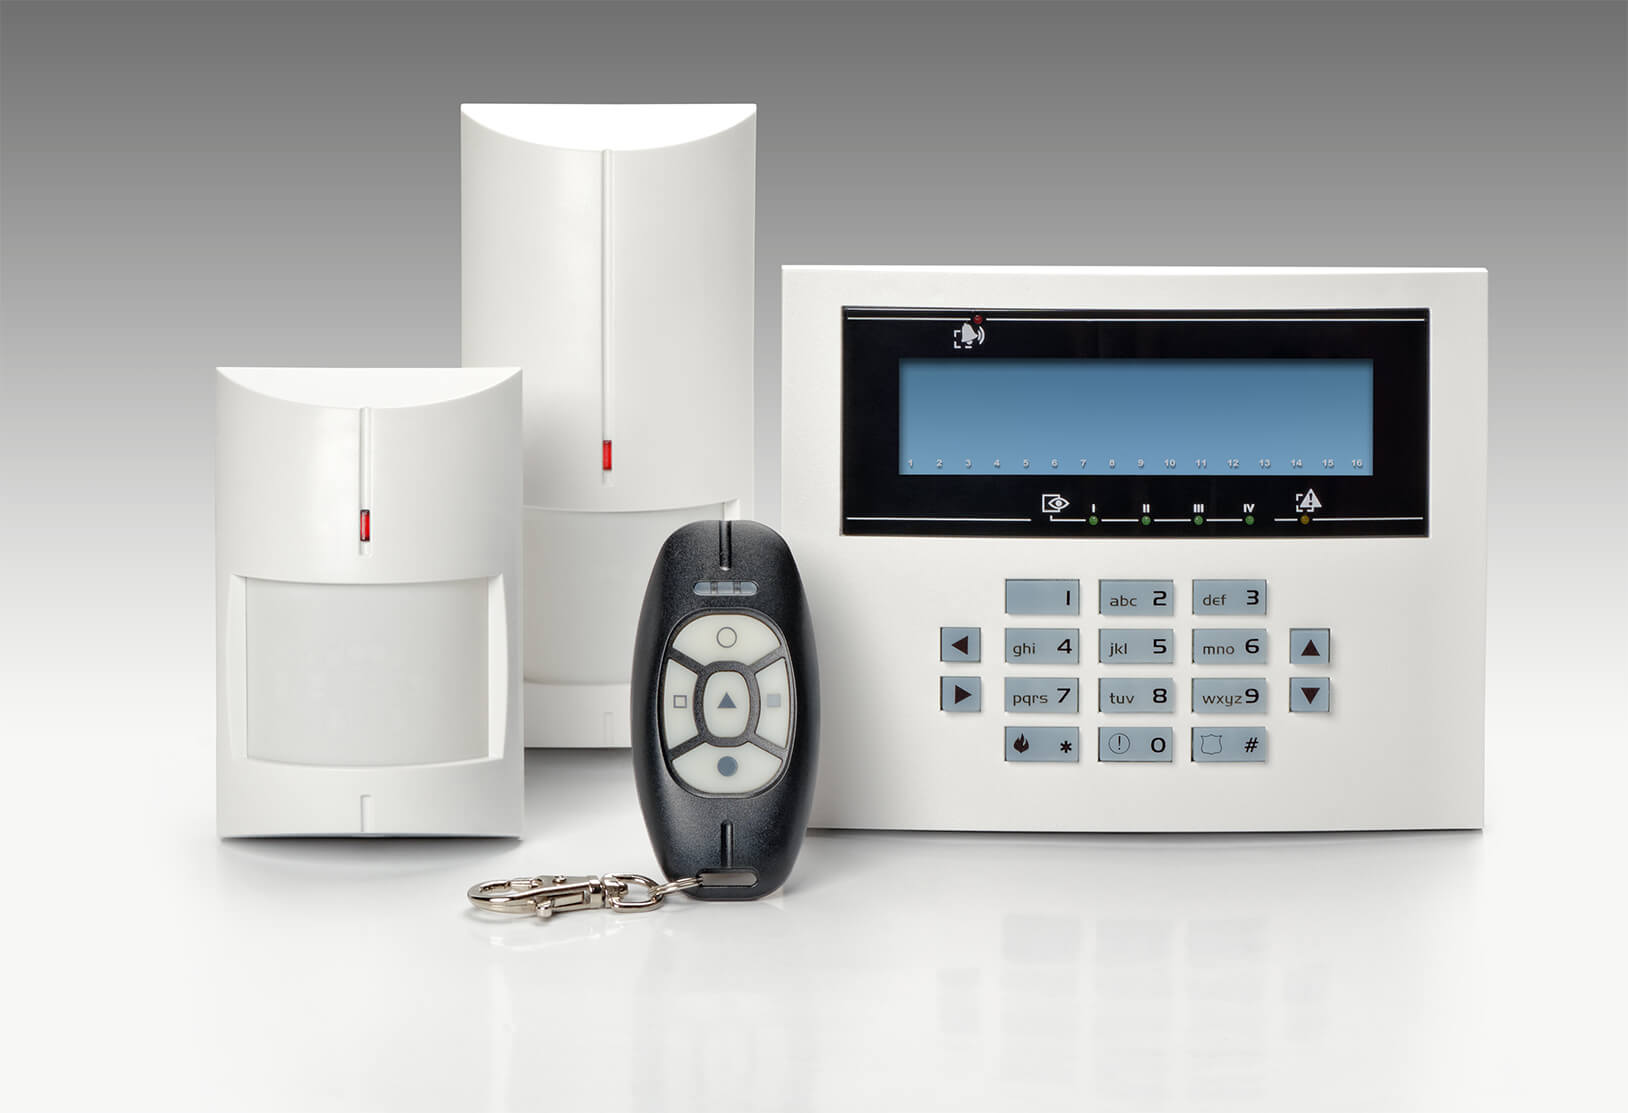 Business & Residential NACOSS Approved Burglar Alarms In Notting Hill W11 - Local Notting Hill W11 security company.Call 02078872244 - Dedicated to Safety & Security. Companies, shops and homes ..